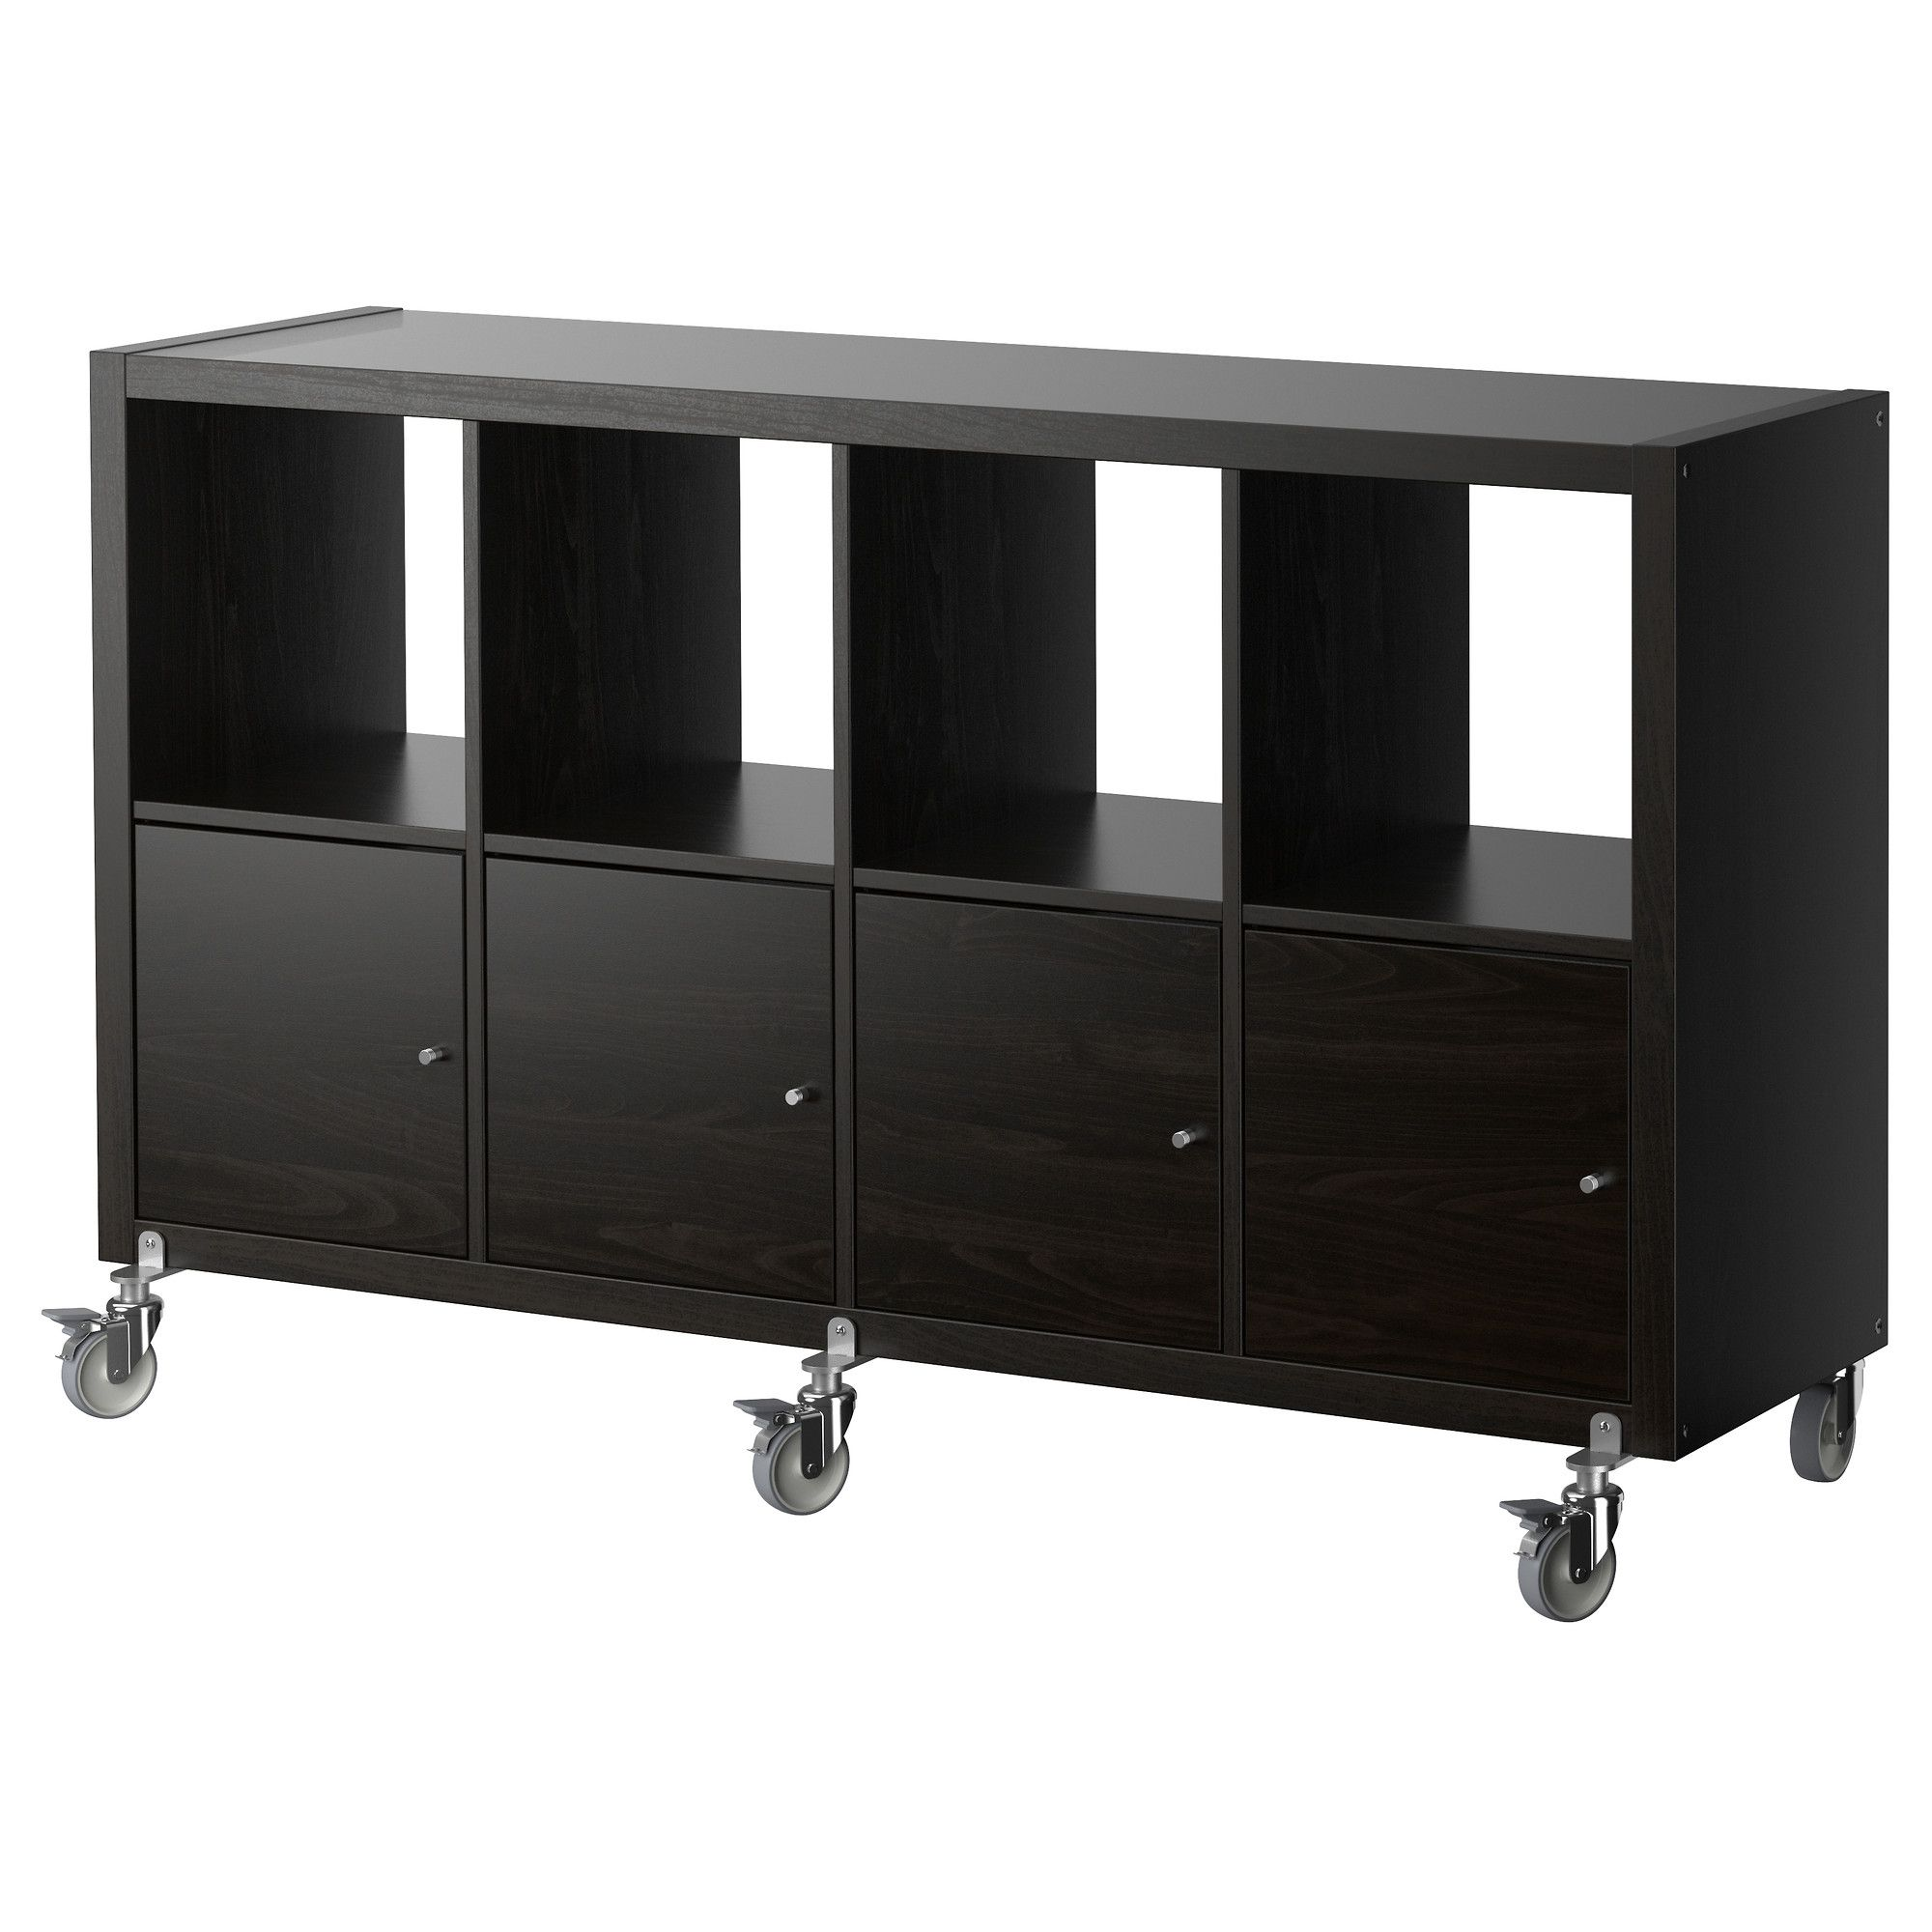 kallax regal mit 4 t ren und rollen schwarzbraun jetzt bestellen unter https moebel. Black Bedroom Furniture Sets. Home Design Ideas